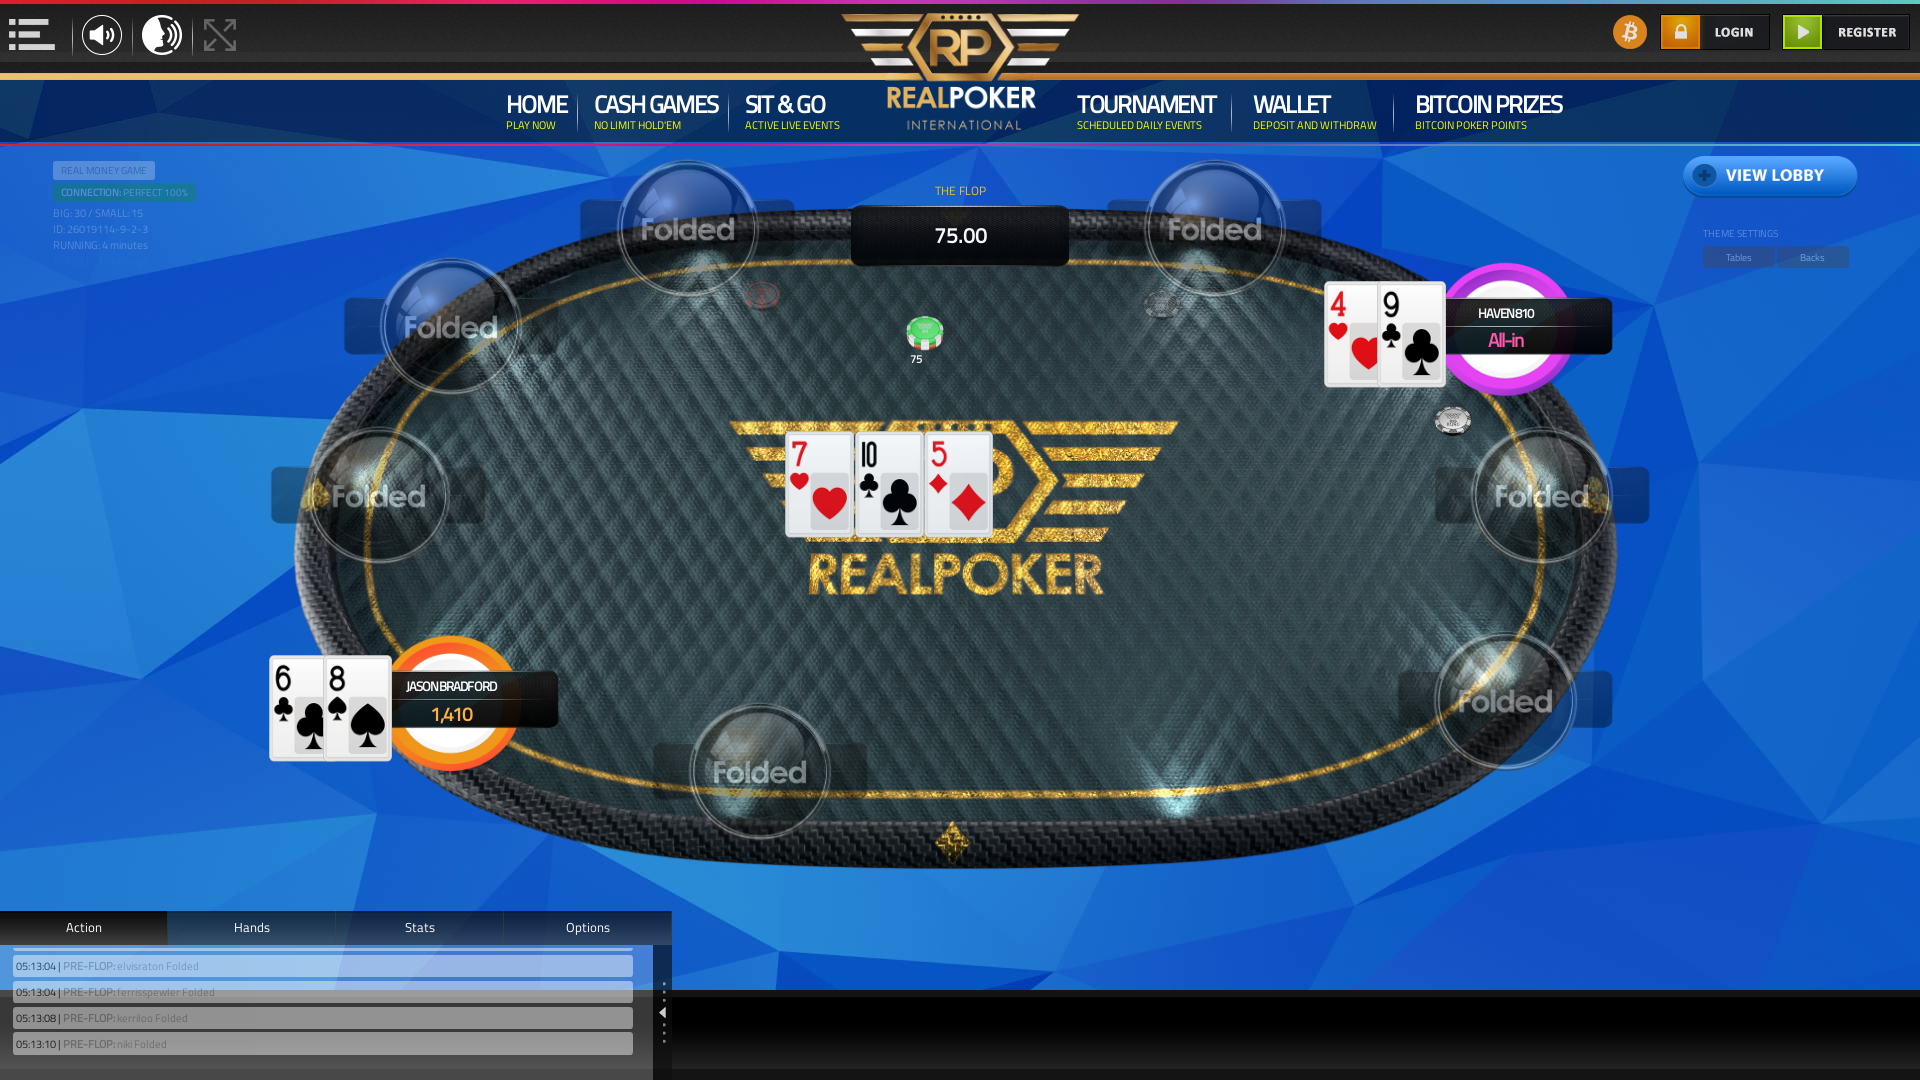 United Kingdom Casino Bitcoin Poker from September